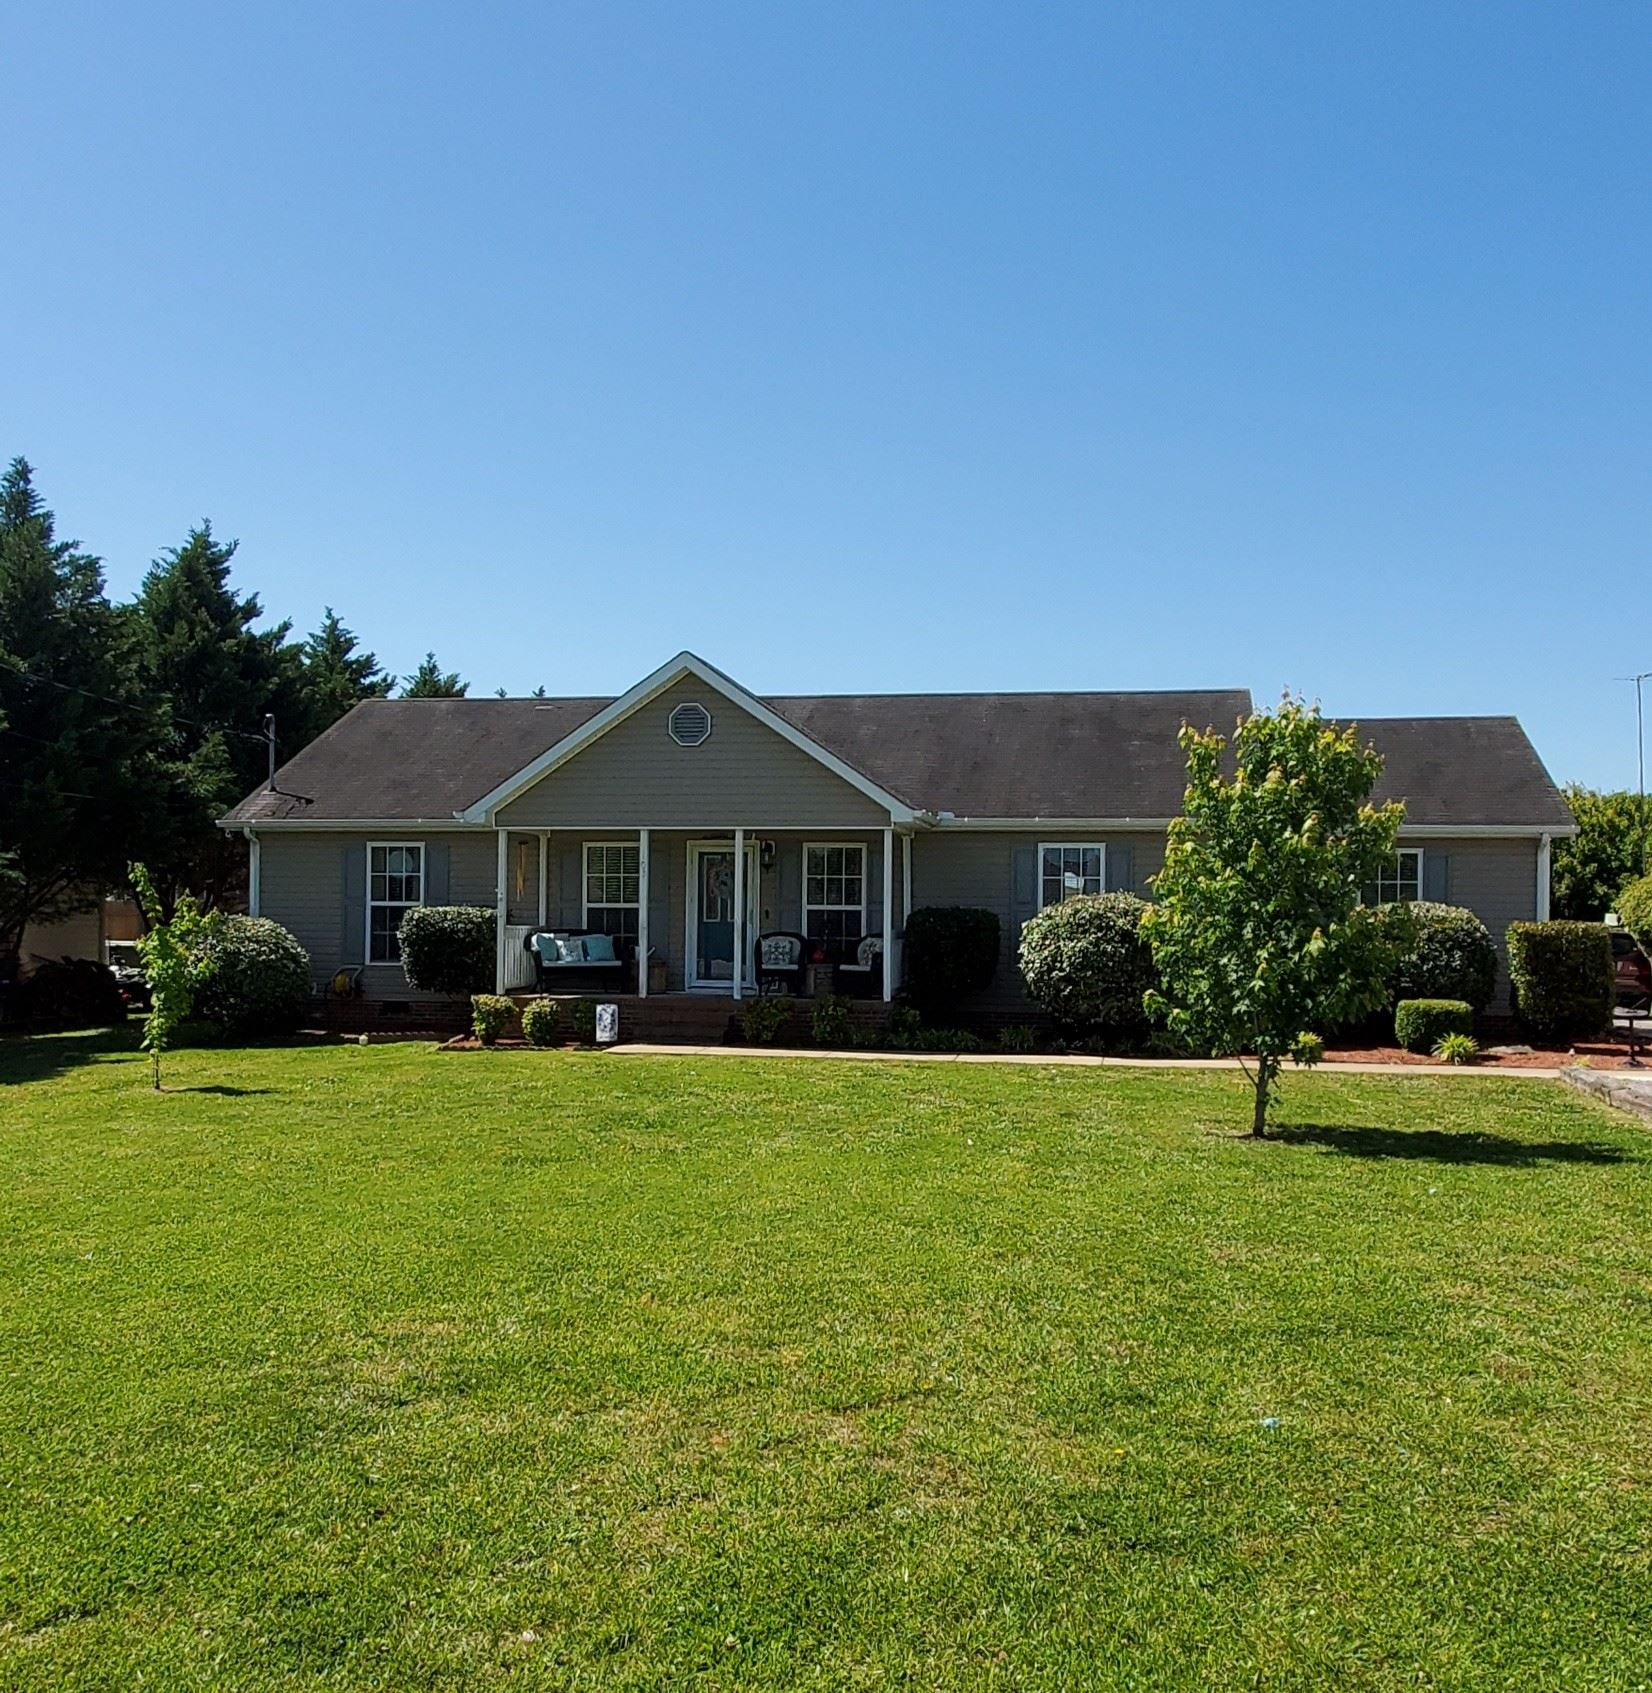 103 Ritch View Dr, Shelbyville, TN 37160 - MLS#: 2253937